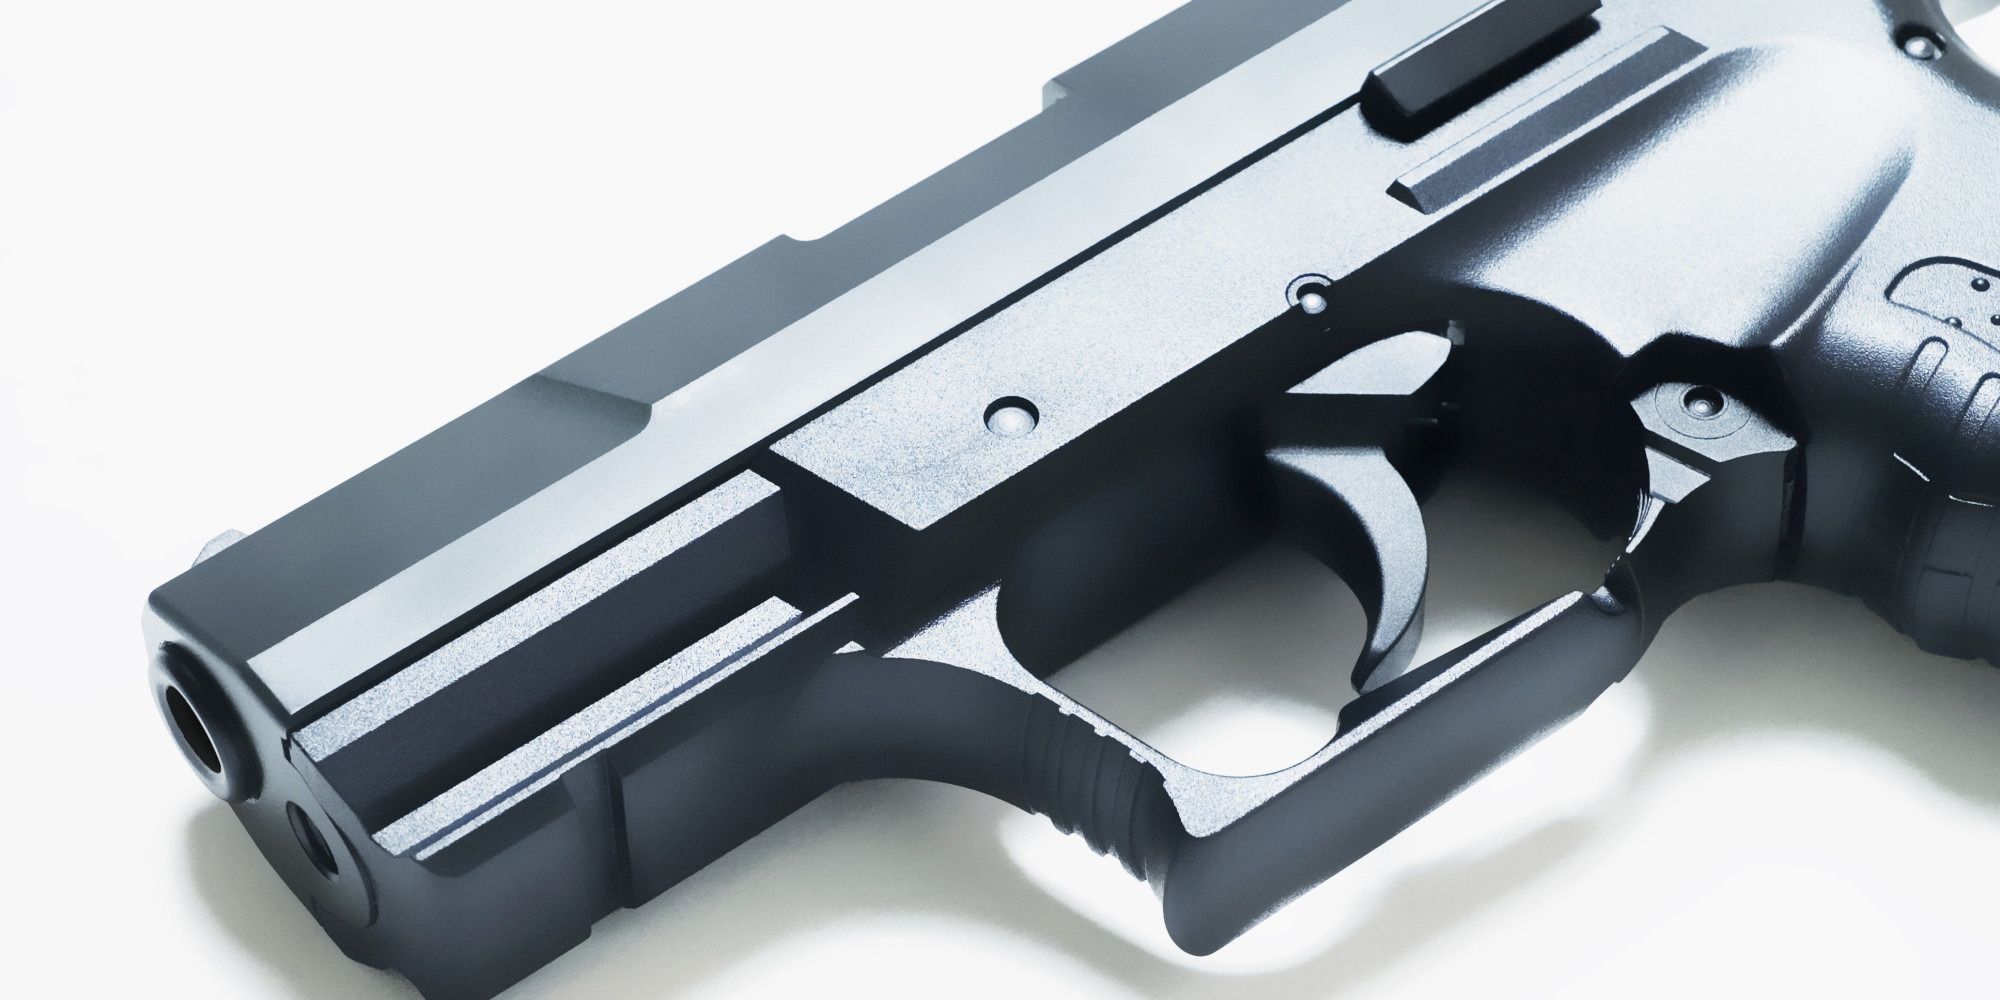 essays for gun control Gun laws are a heated argument both sides feel their argument is solid and are unwilling to yield this sample paper argues in favor of stricter gun control.